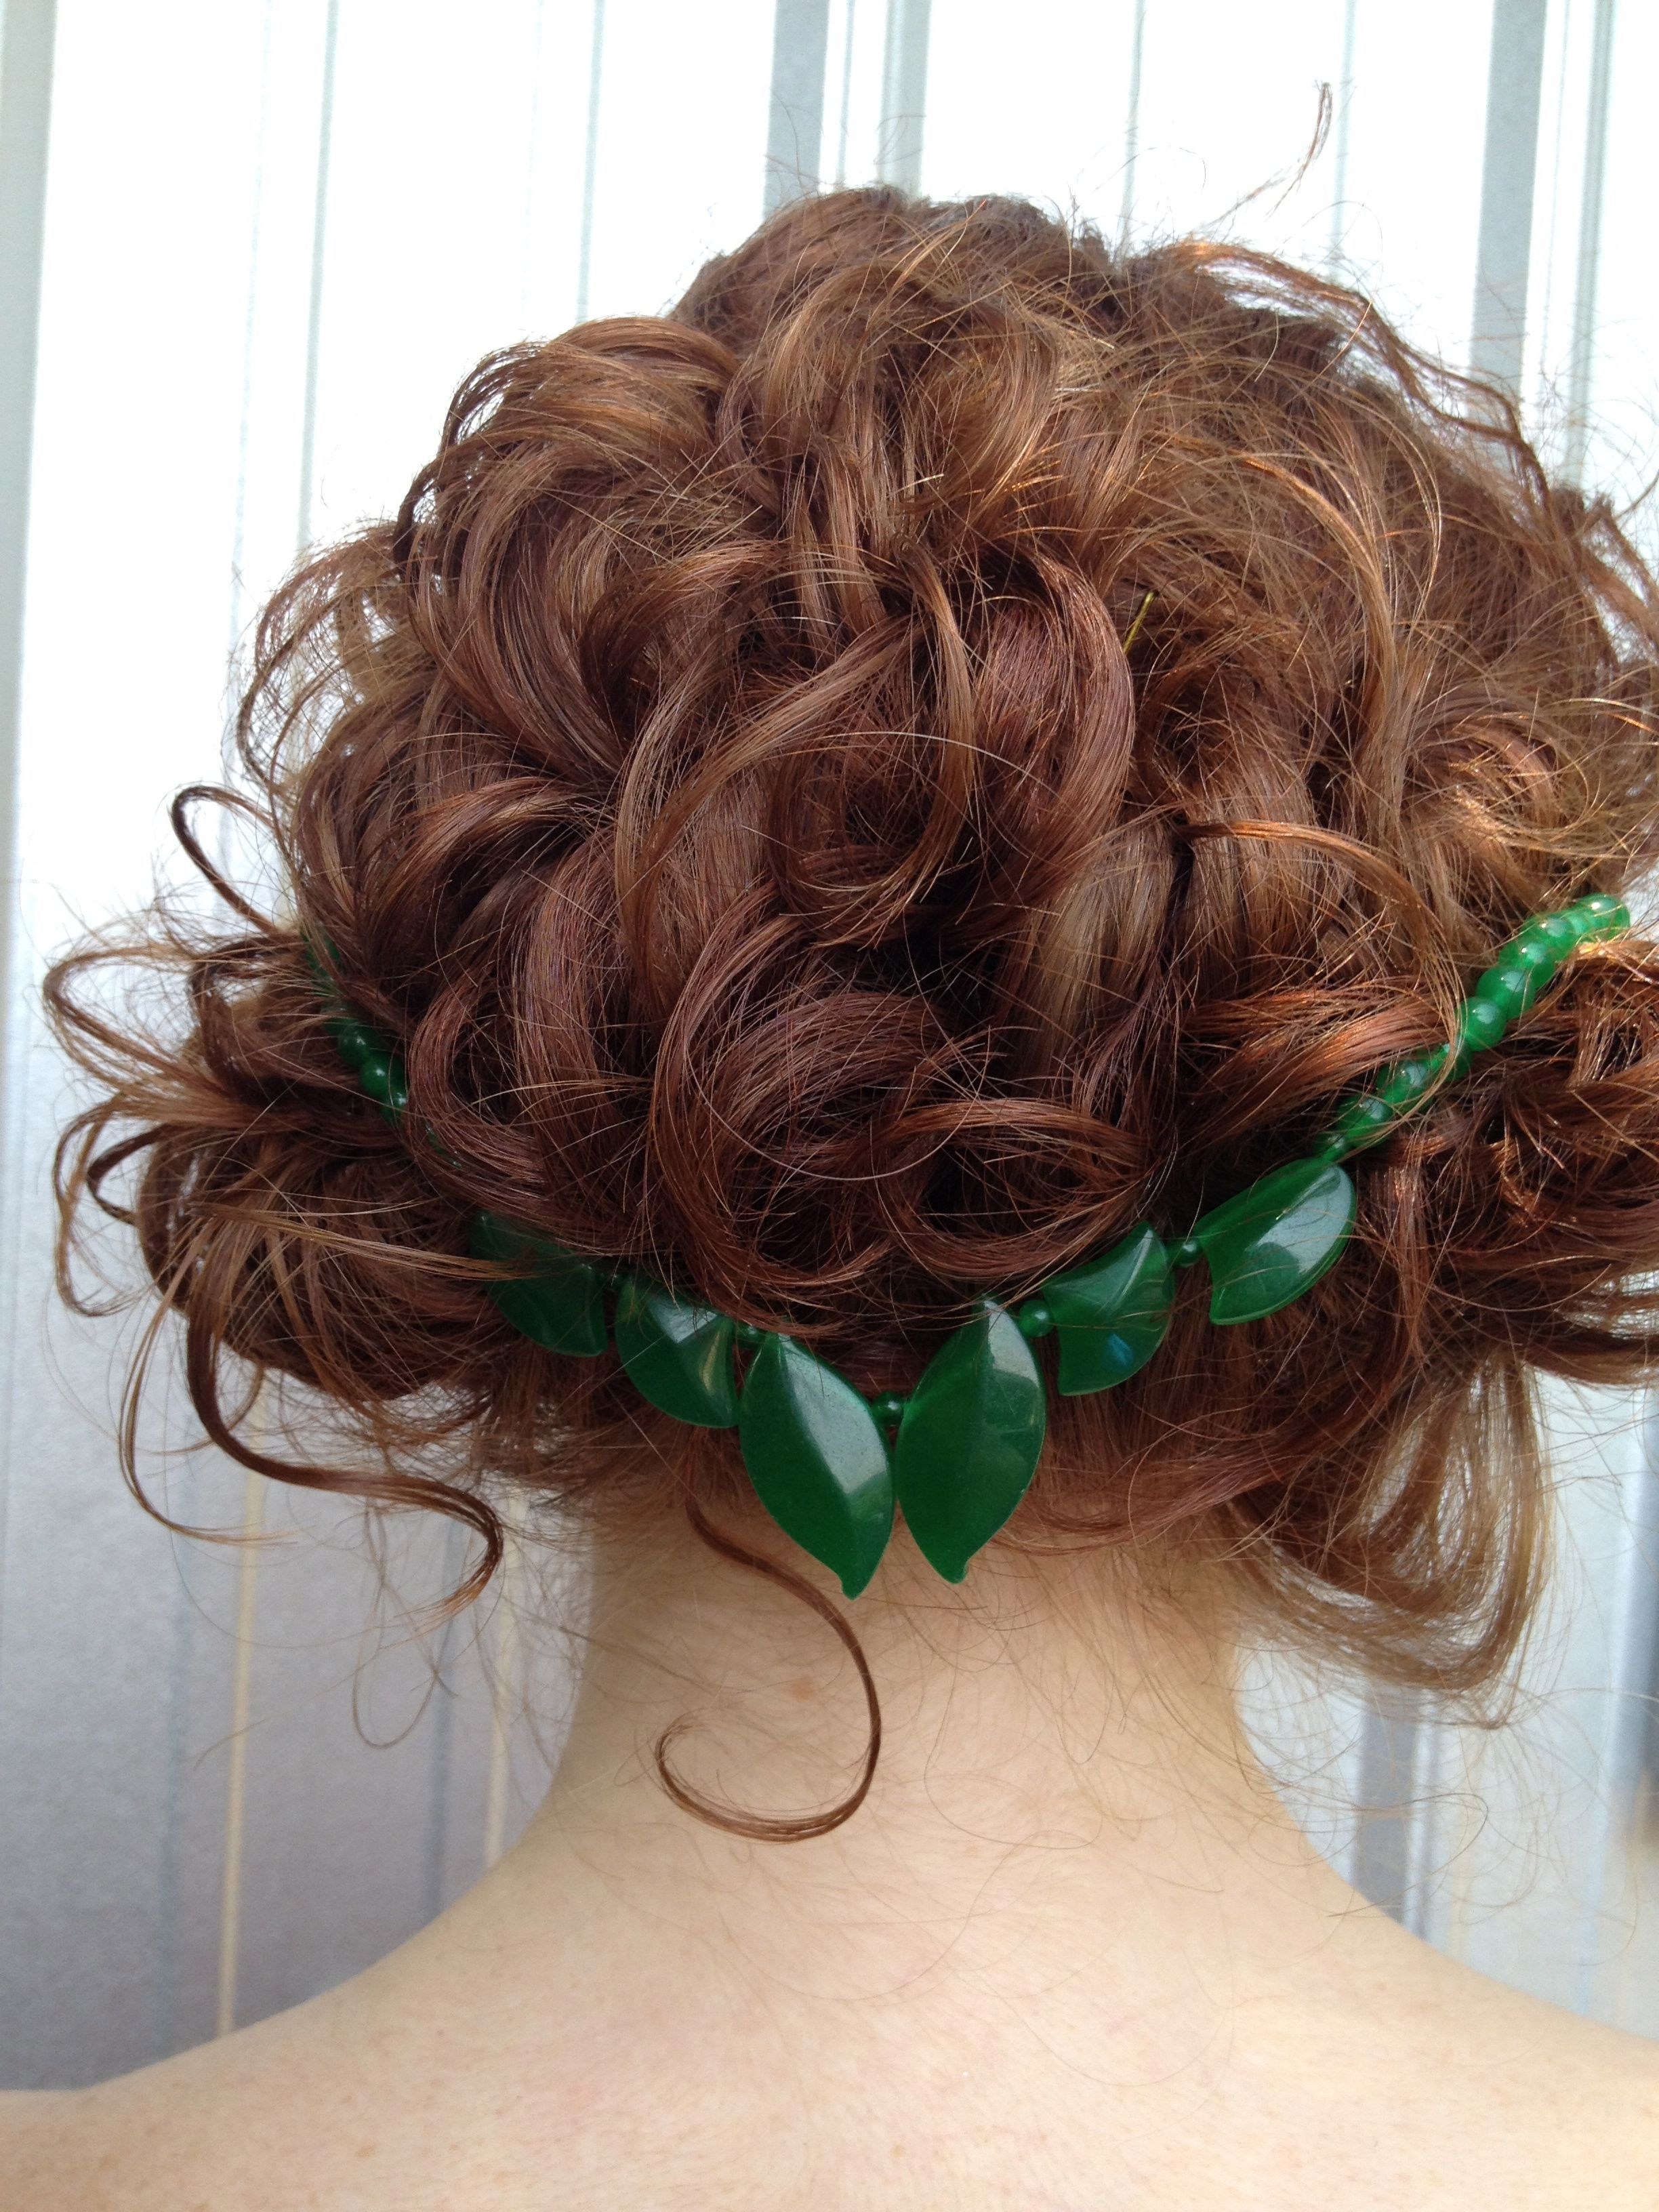 Curly hair up do for more inspired curly hairstyles